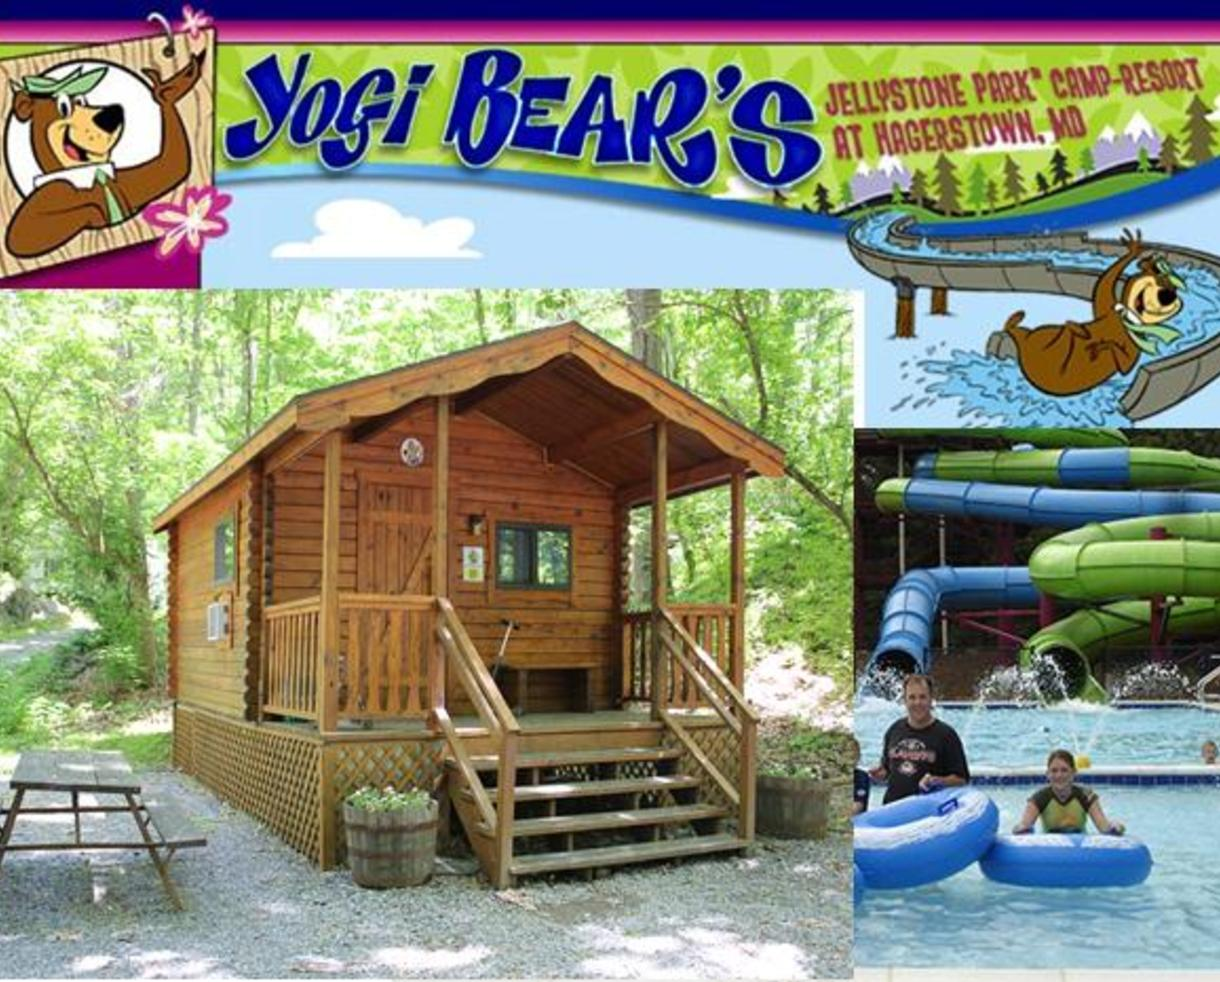 $80 for 2-Night Vacation to Yogi Bear's Jellystone Park in Western Maryland (50% off)